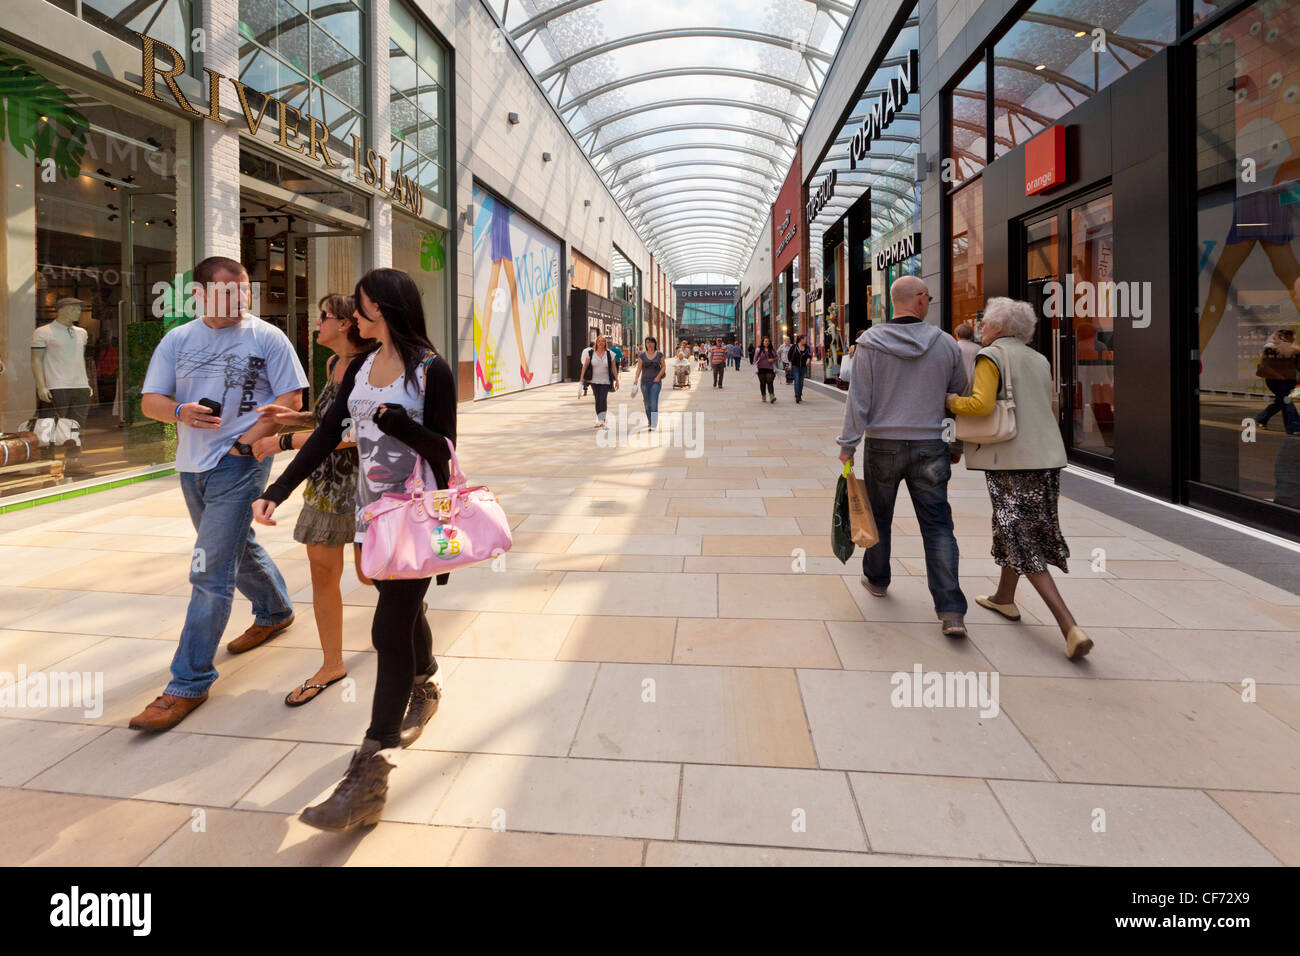 People walking in Trinity Walk, Wakefield's new shopping mall. - Stock Image